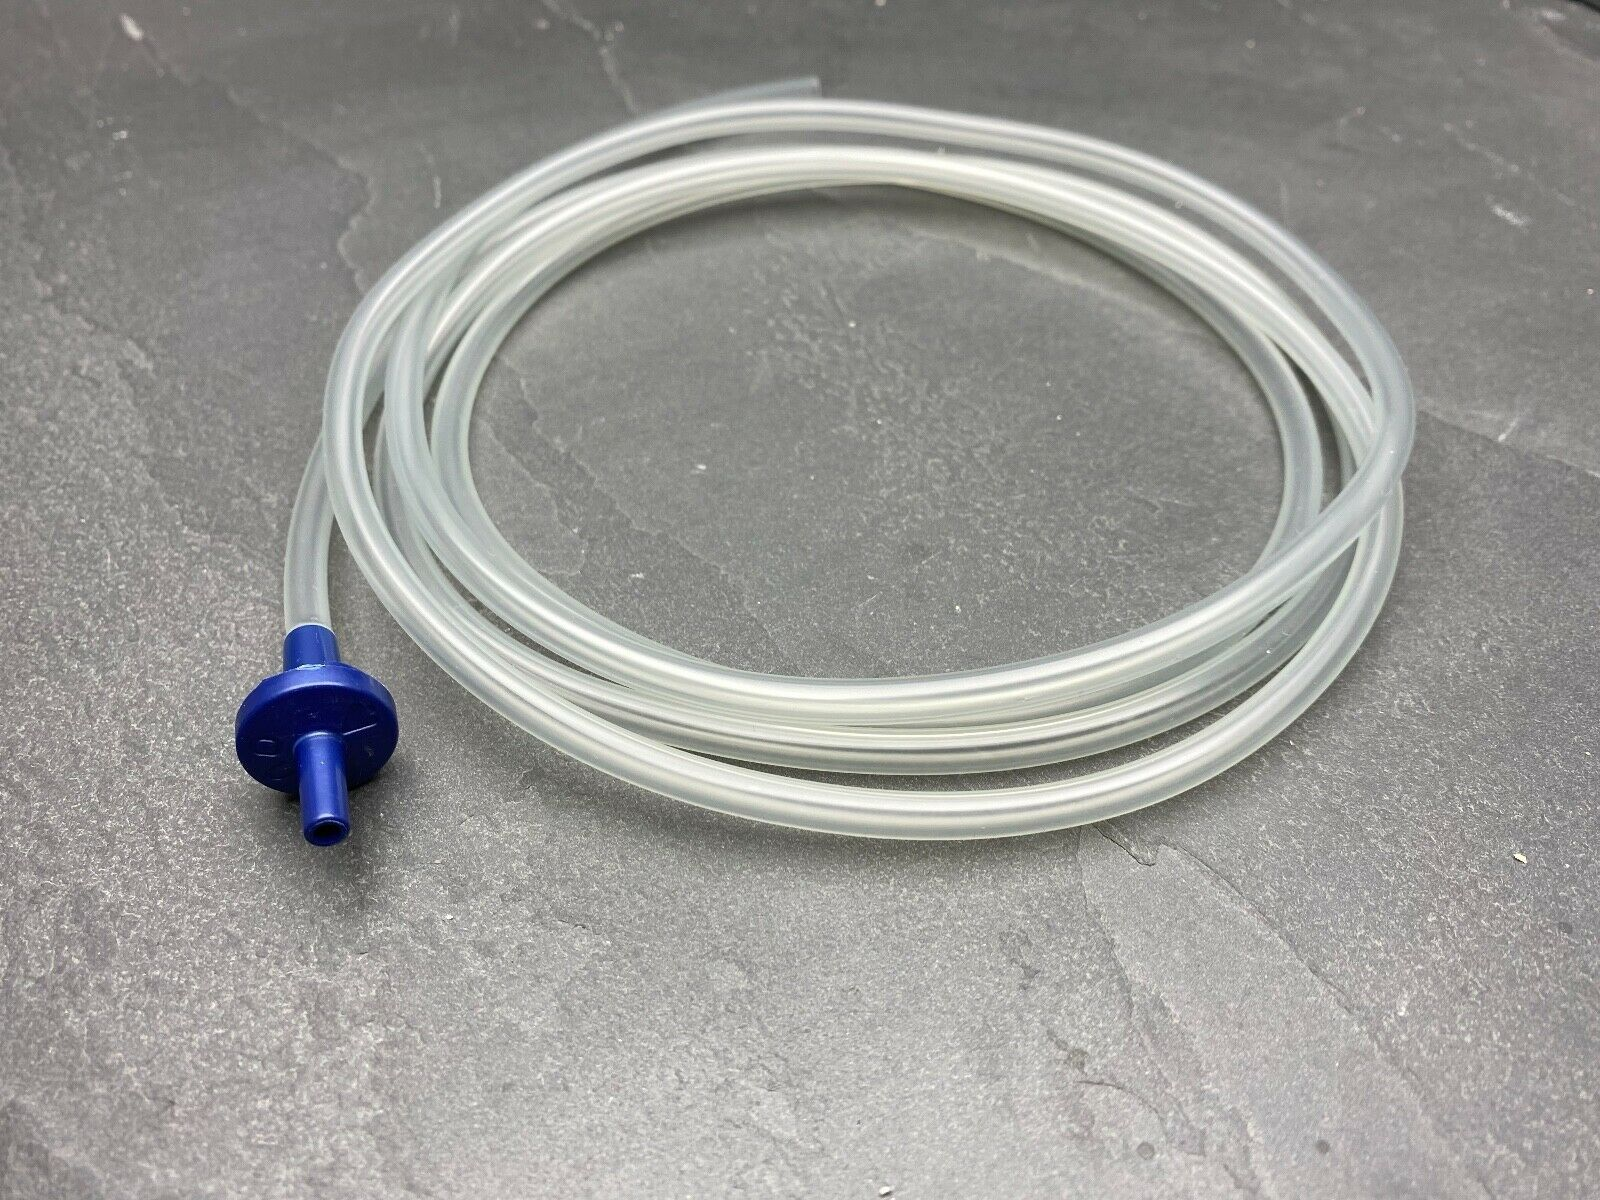 One Way Valve Check Stop With Pipe Biorb Compatible For All Aquarium Air Pumps